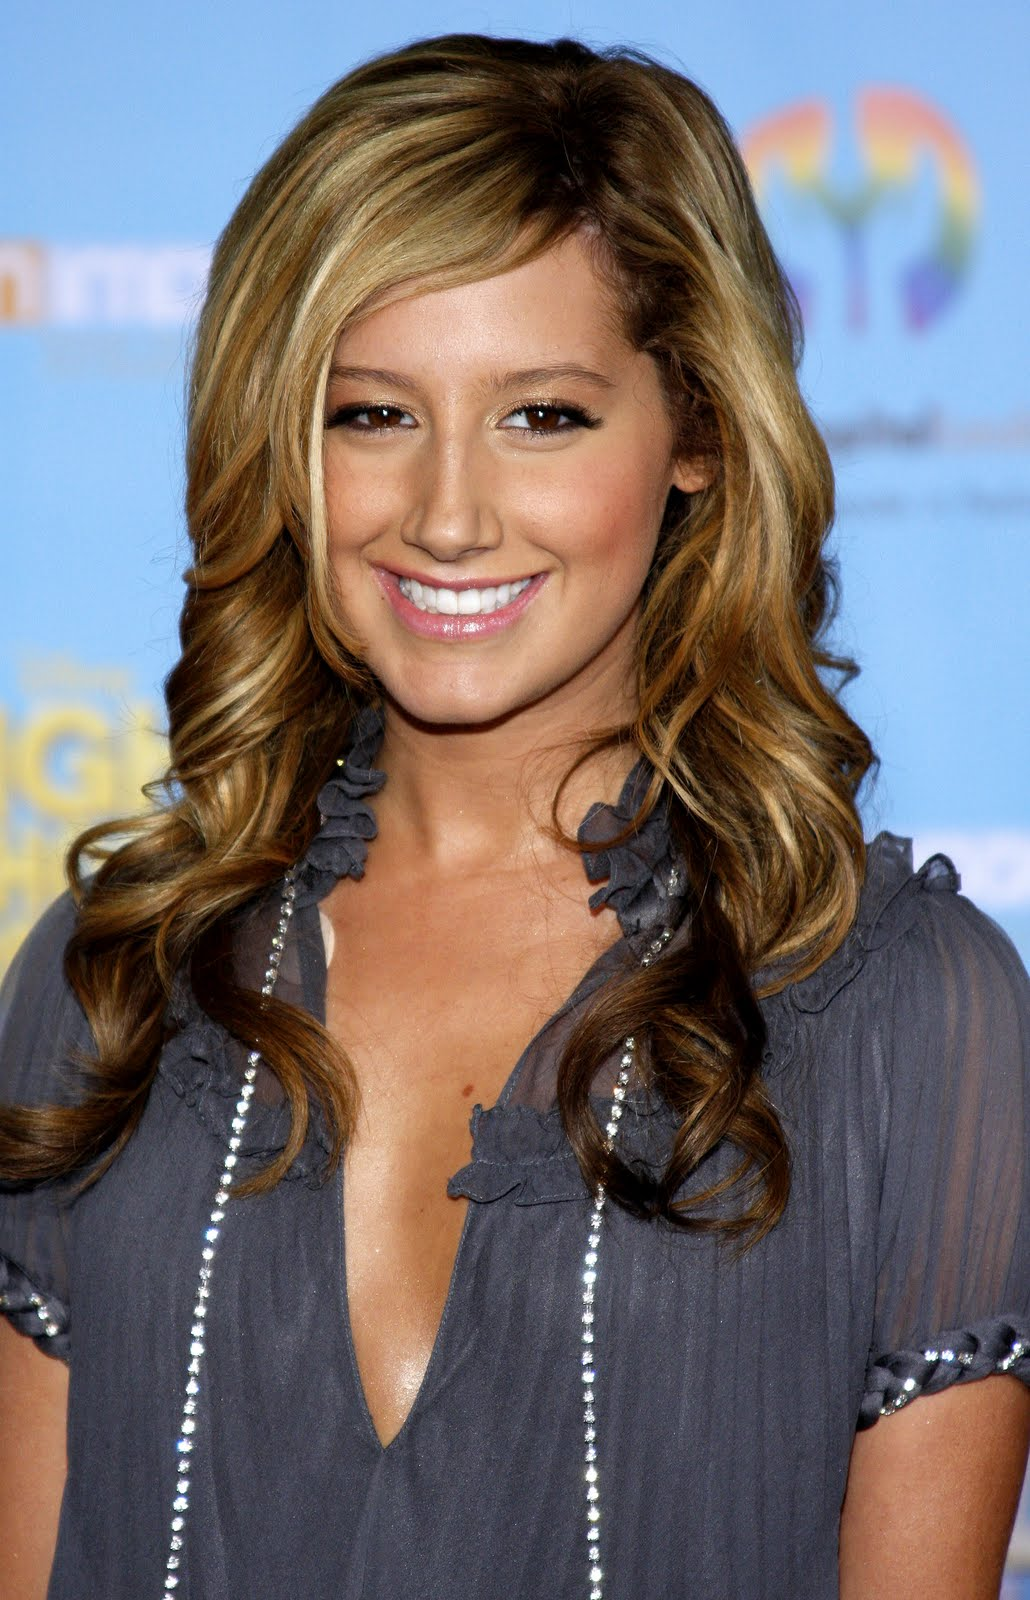 Curly Long Hair, Long Hairstyle 2011, Hairstyle 2011, New Long Hairstyle 2011, Celebrity Long Hairstyles 2048